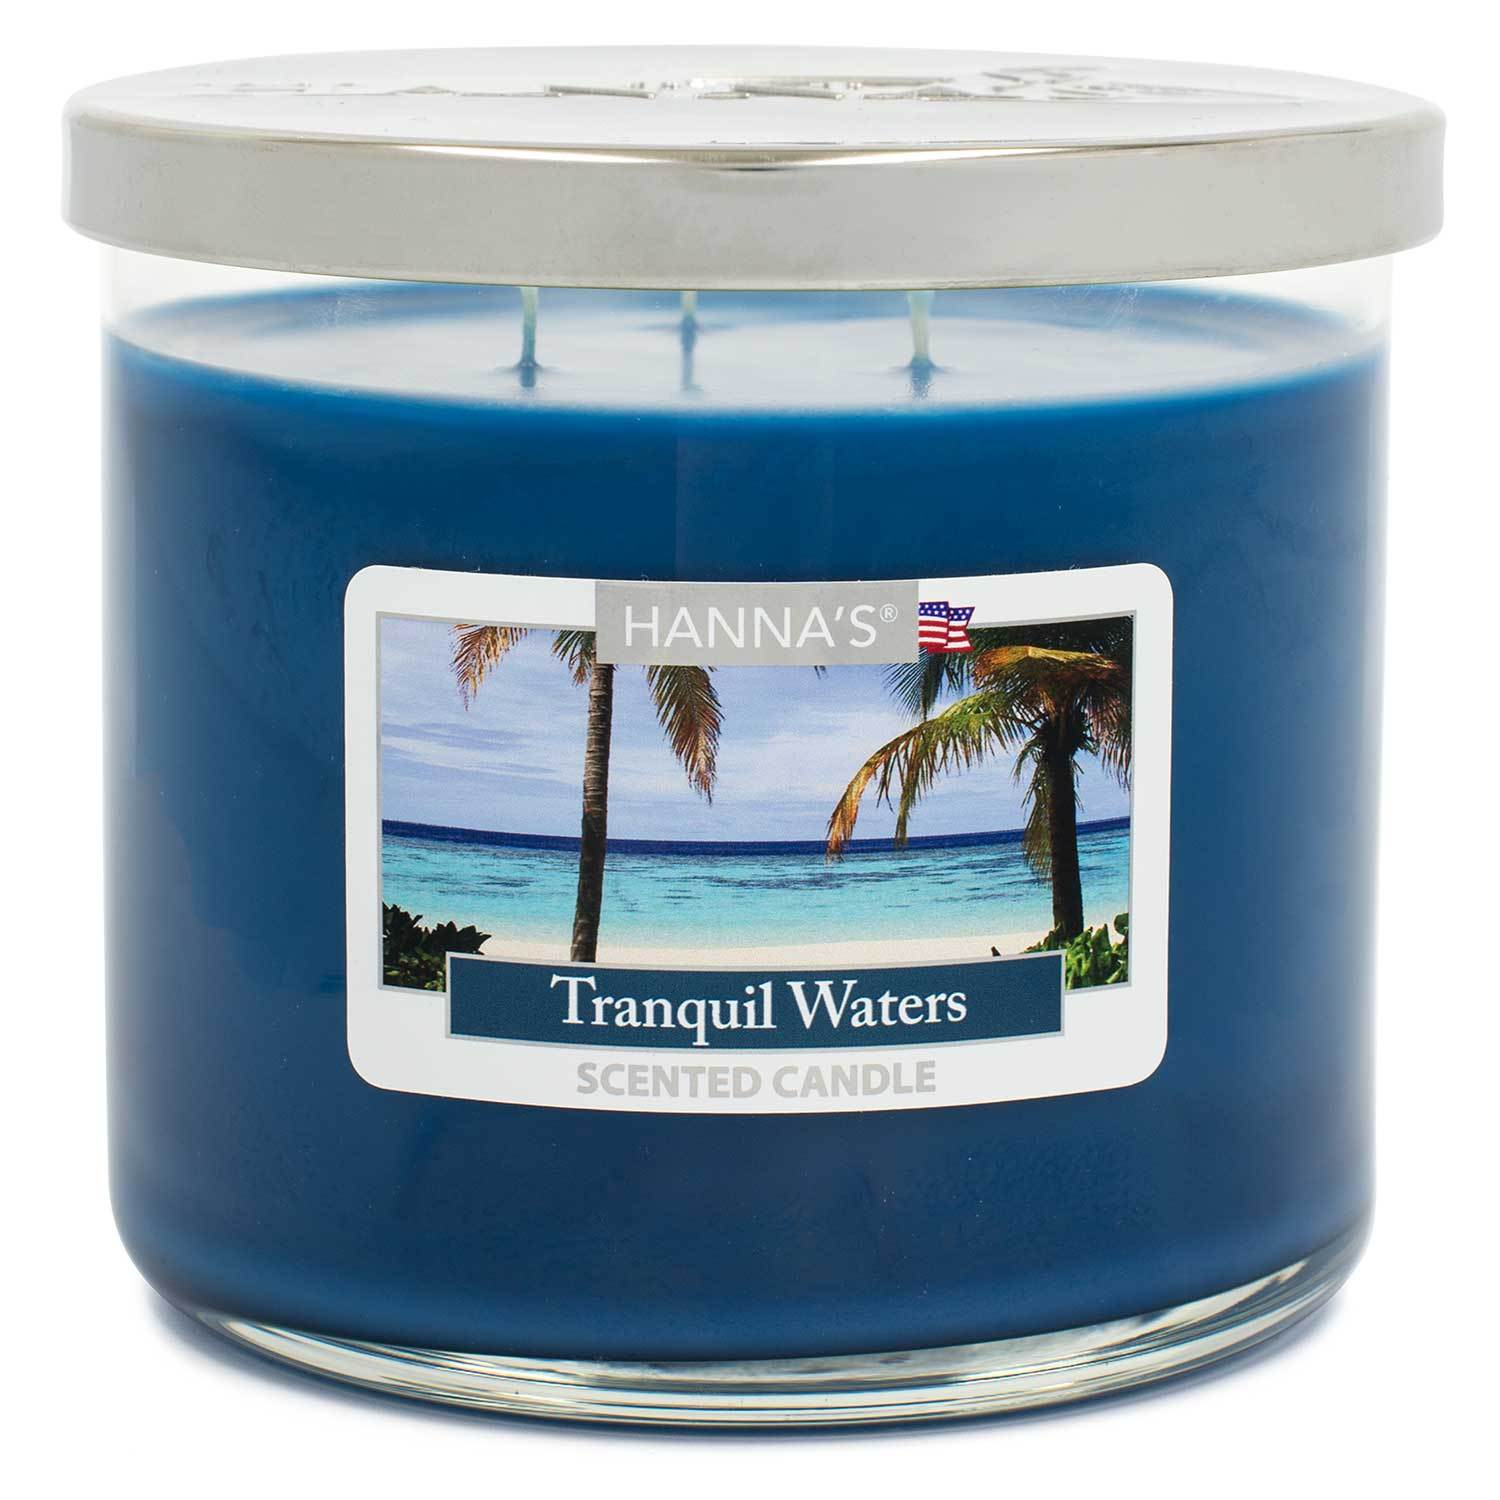 Tranquil Waters Scented Large 3 wick Candle - Candlemart.com